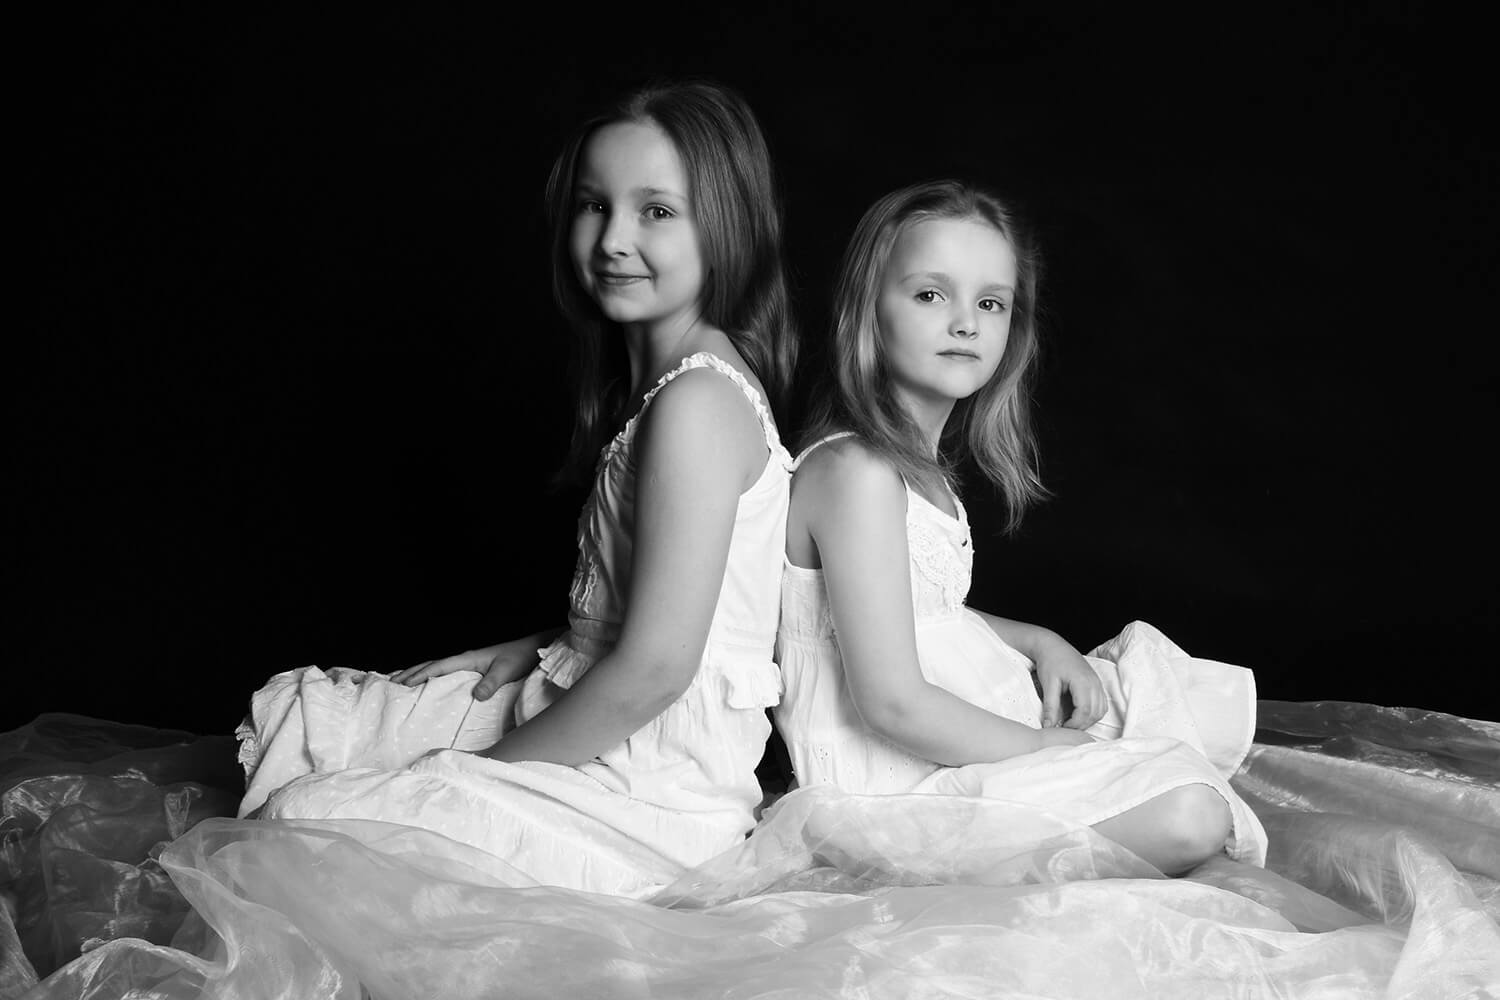 black and white family photo of two sisters in white dresses on a dark background